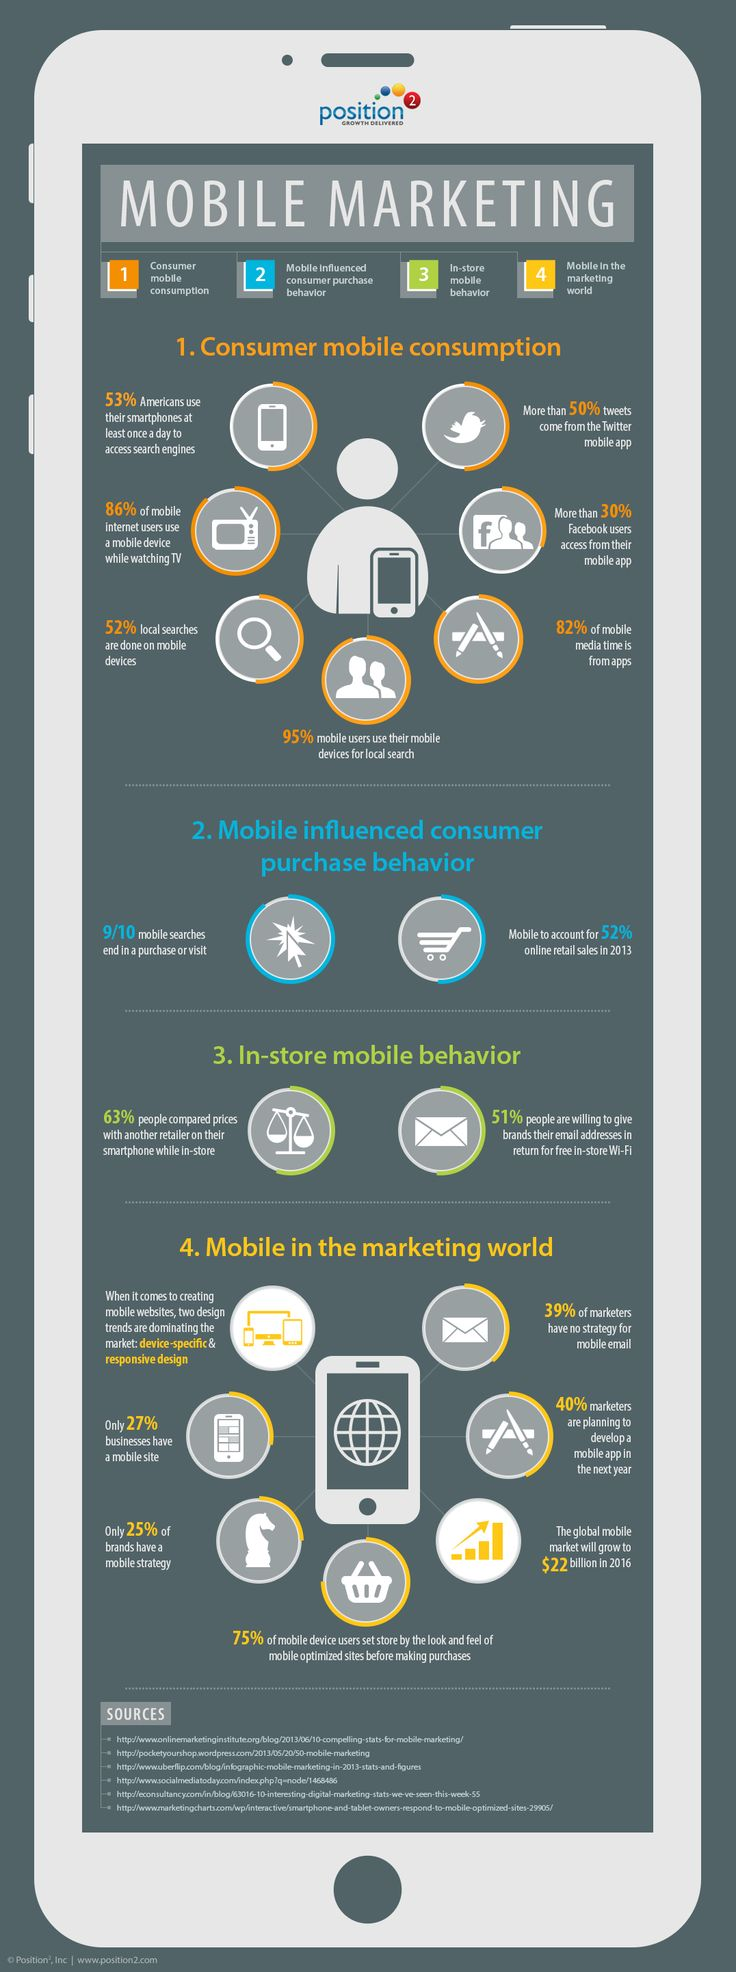 105 best images about Mobile Marketing on Pinterest | Digital ...